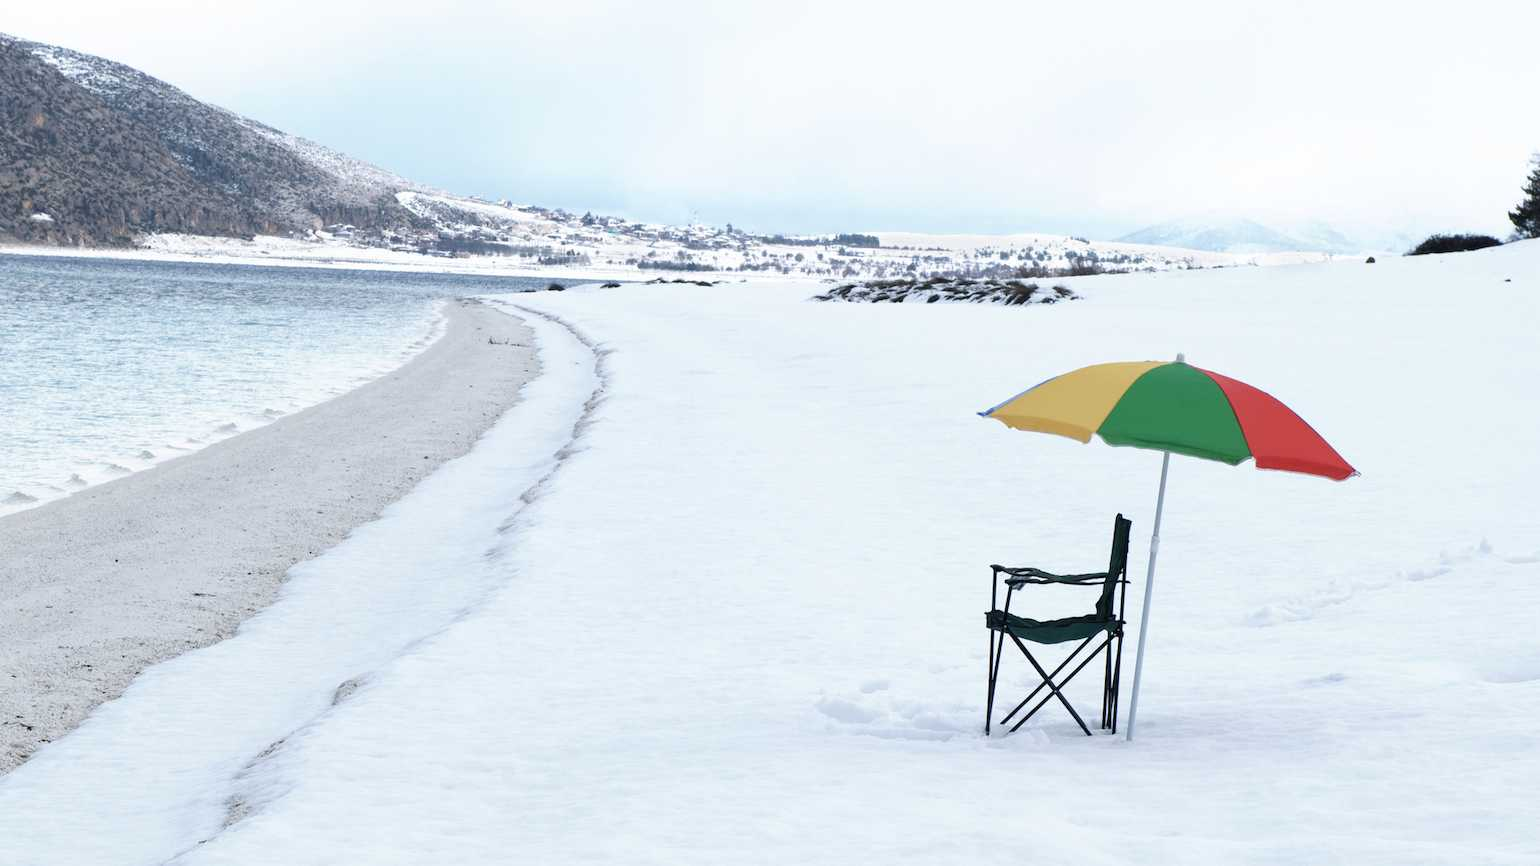 Finding a beach day in the middle of winter